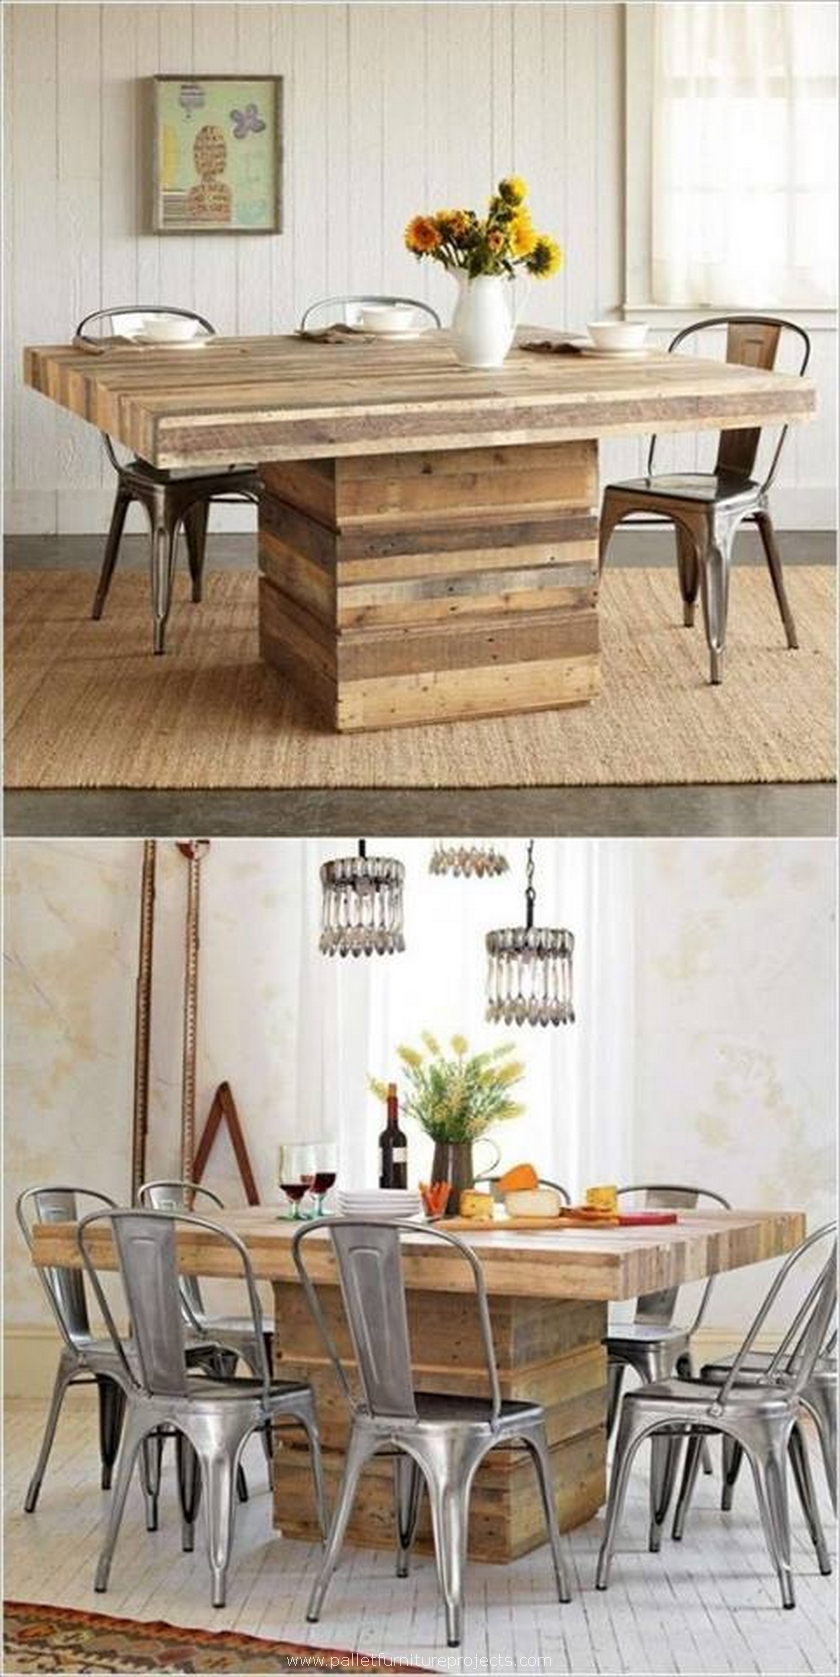 recycled wood pallet ideas pallet furniture projects. Black Bedroom Furniture Sets. Home Design Ideas